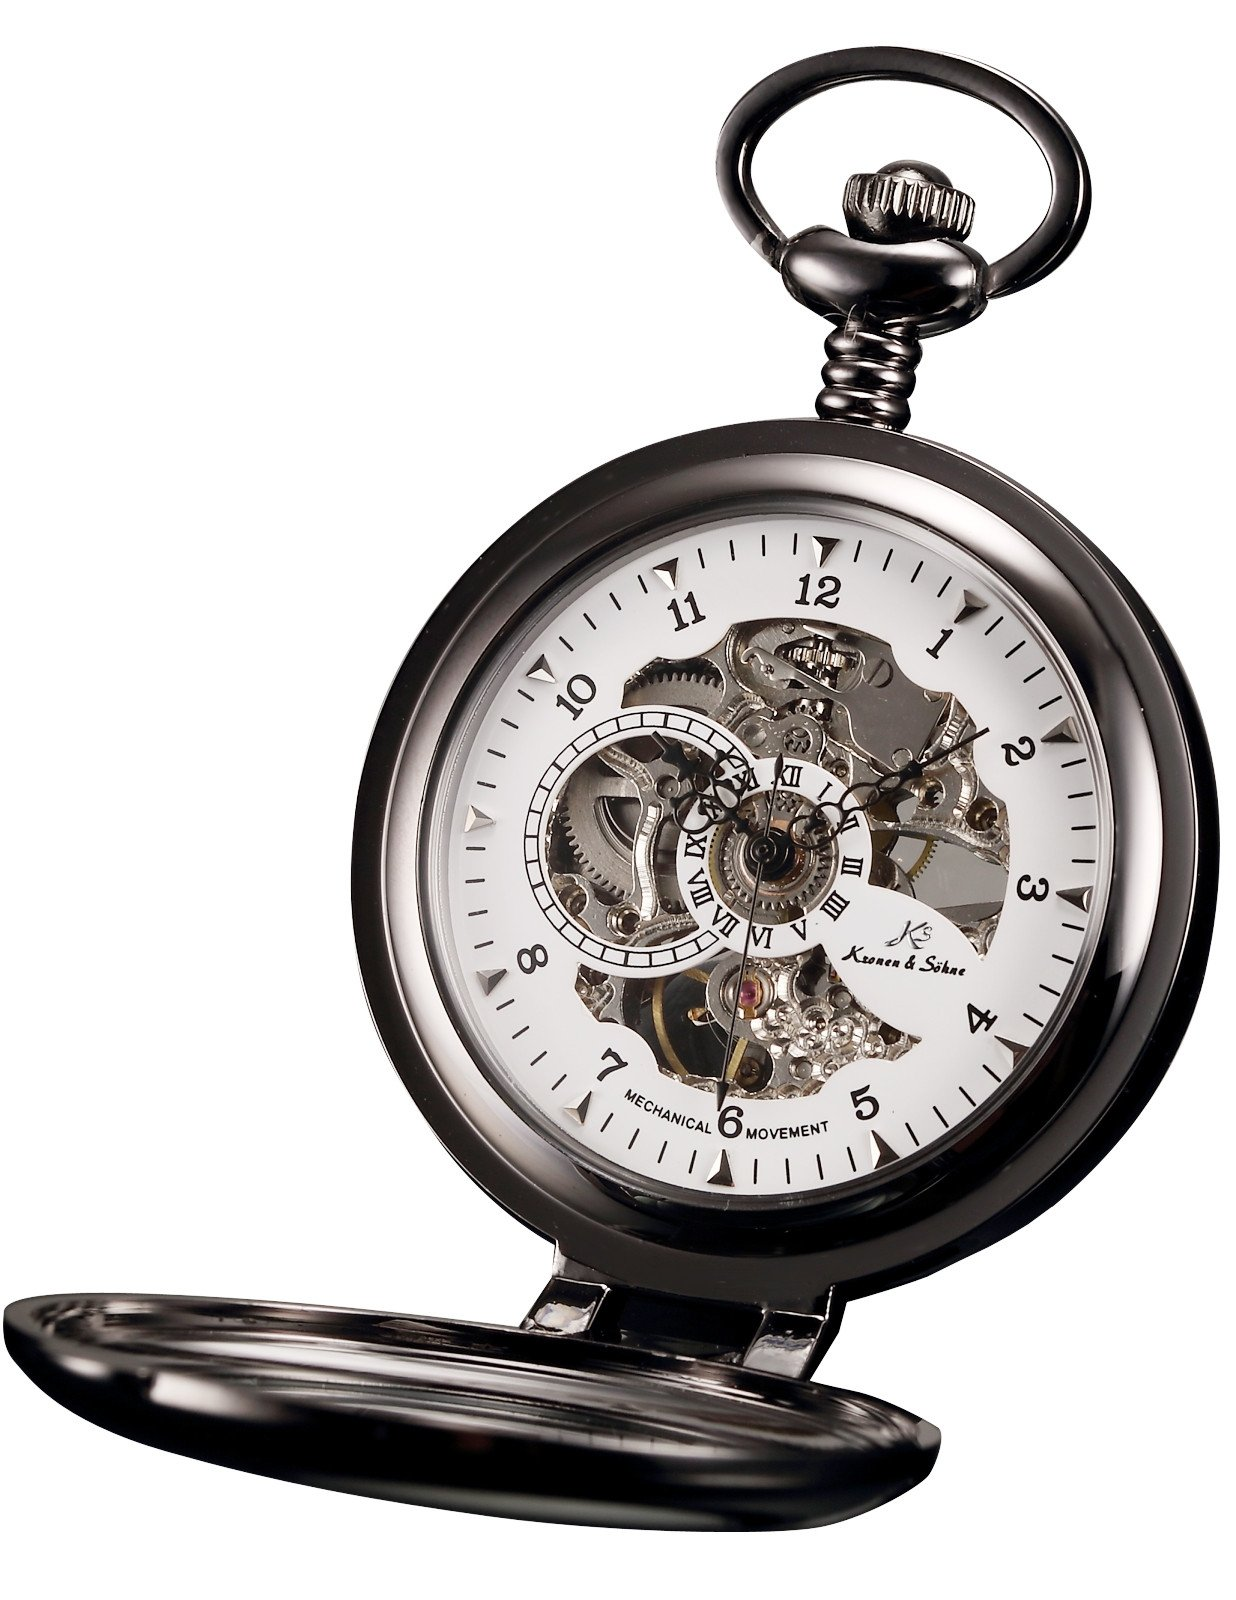 HELMASK pocket watch - Alloy Black Round man mens Analog Mechanical Hand-winding Half hunter Pocket Watch